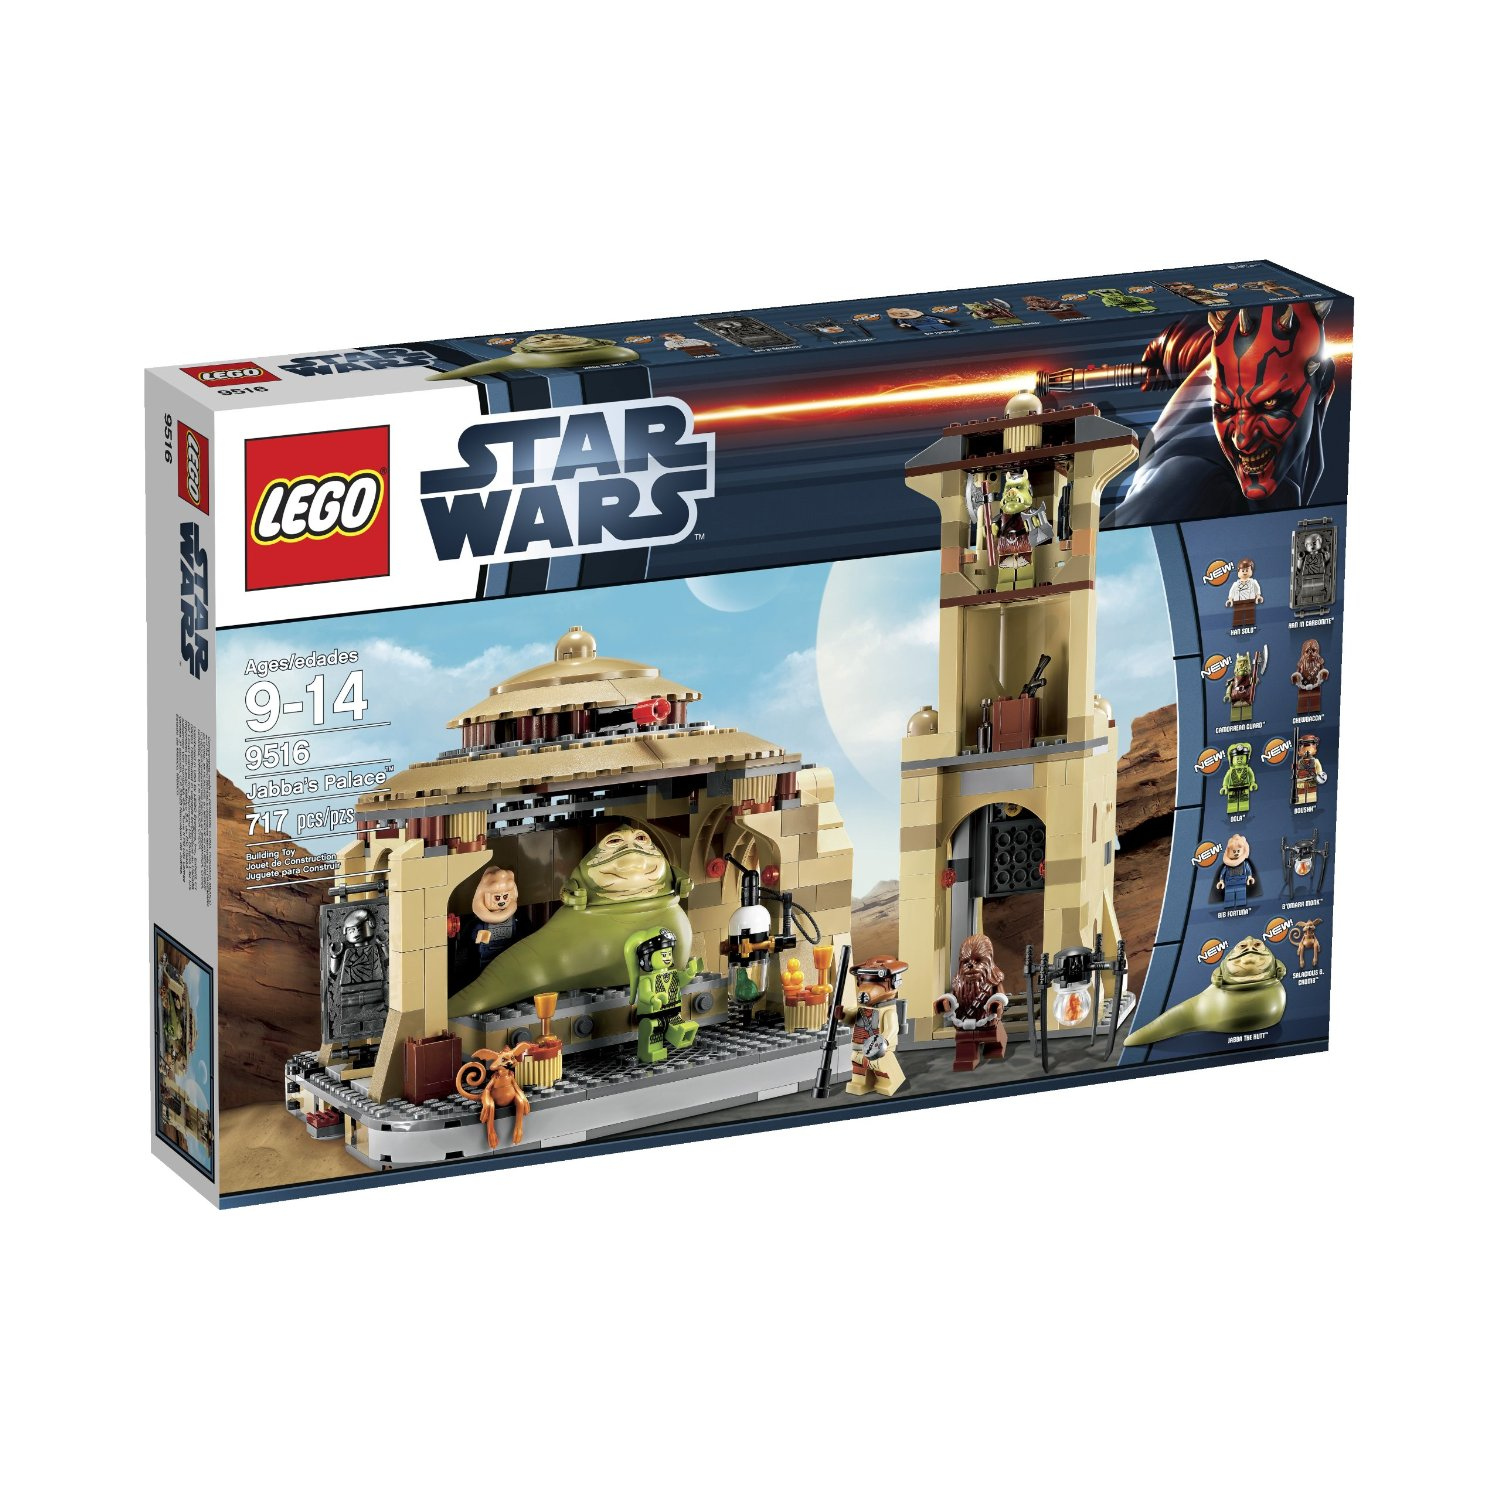 Jabbas Palace Lego Star Wars Wiki FANDOM Powered By Wikia - 25 2 lego star wars minifigures han solo han in carbonite blaster